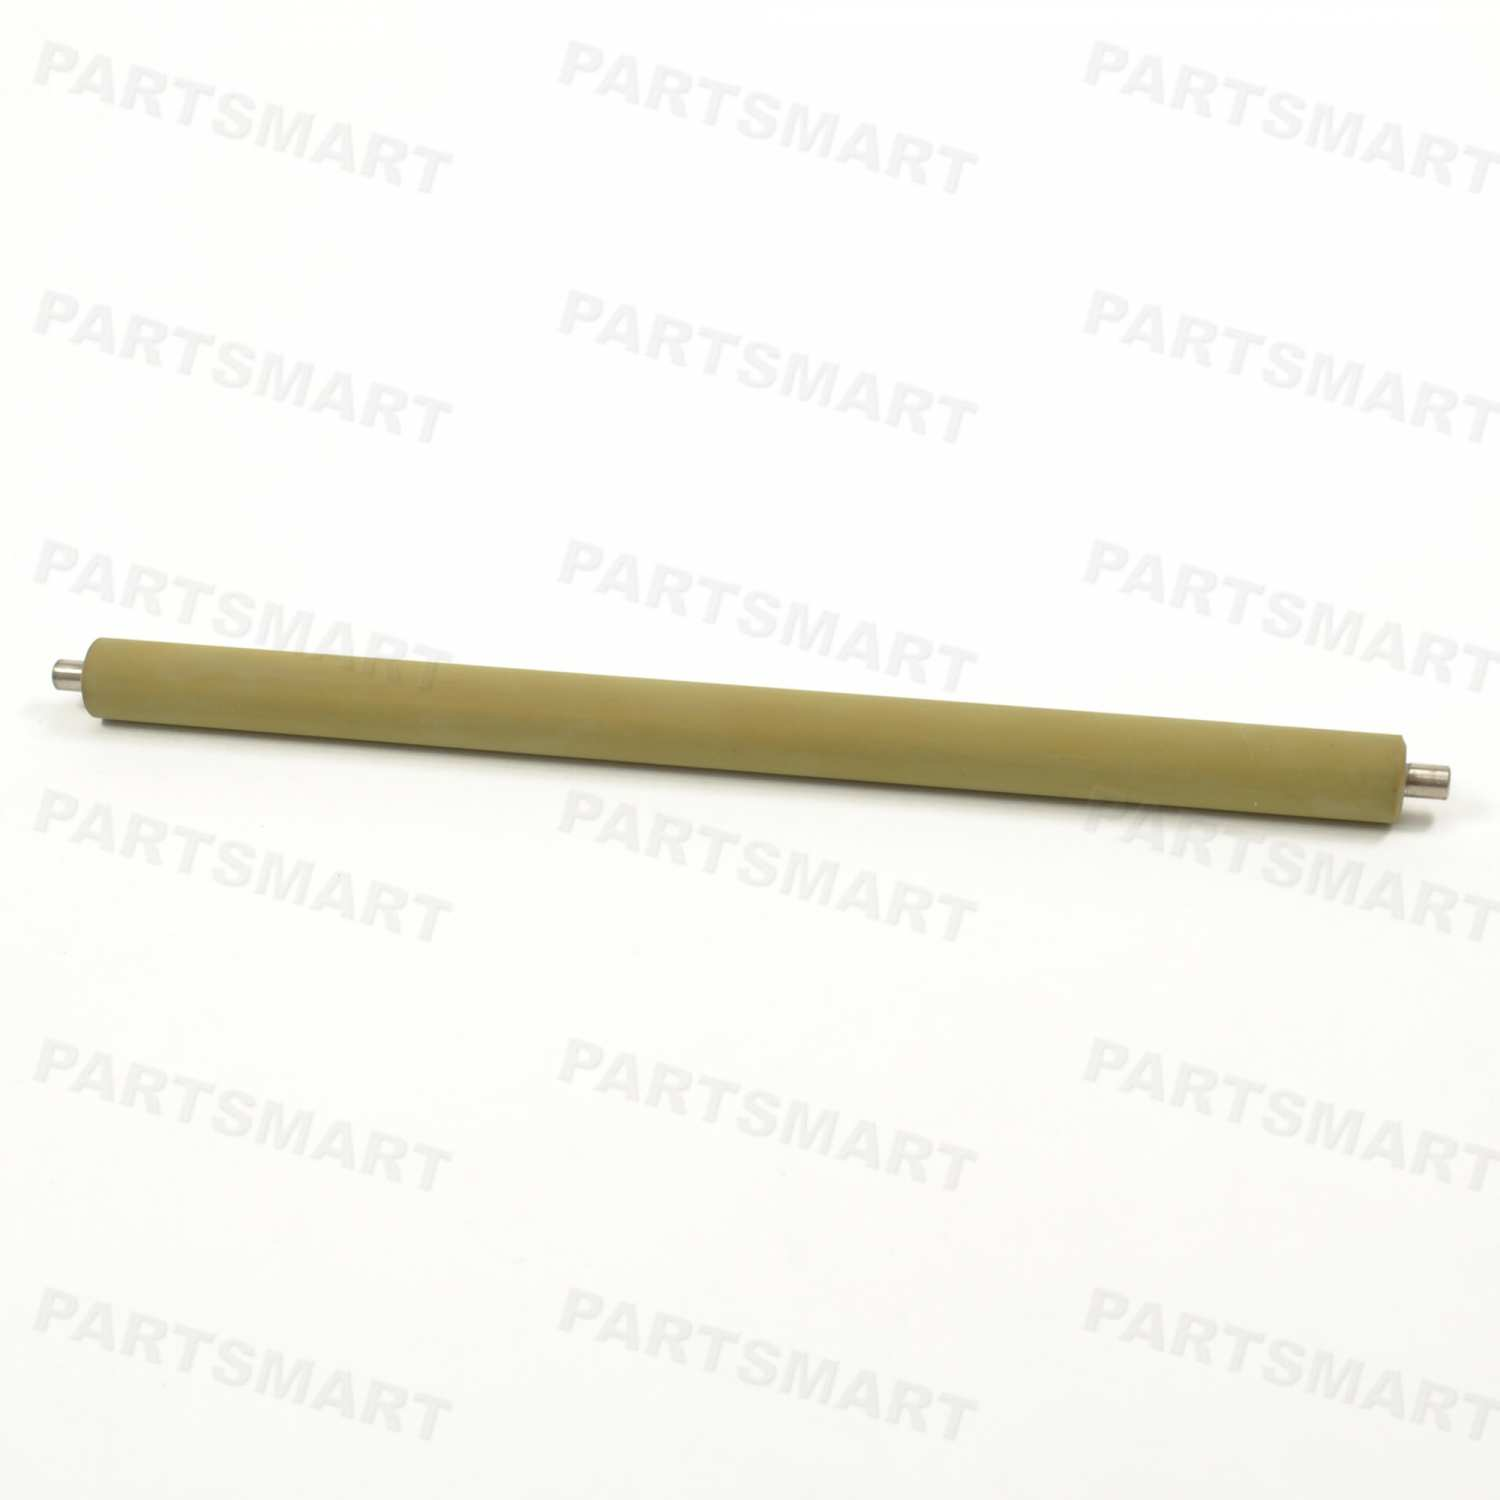 J1756 Charge Roller (PCR) for Dell M5200, W5300